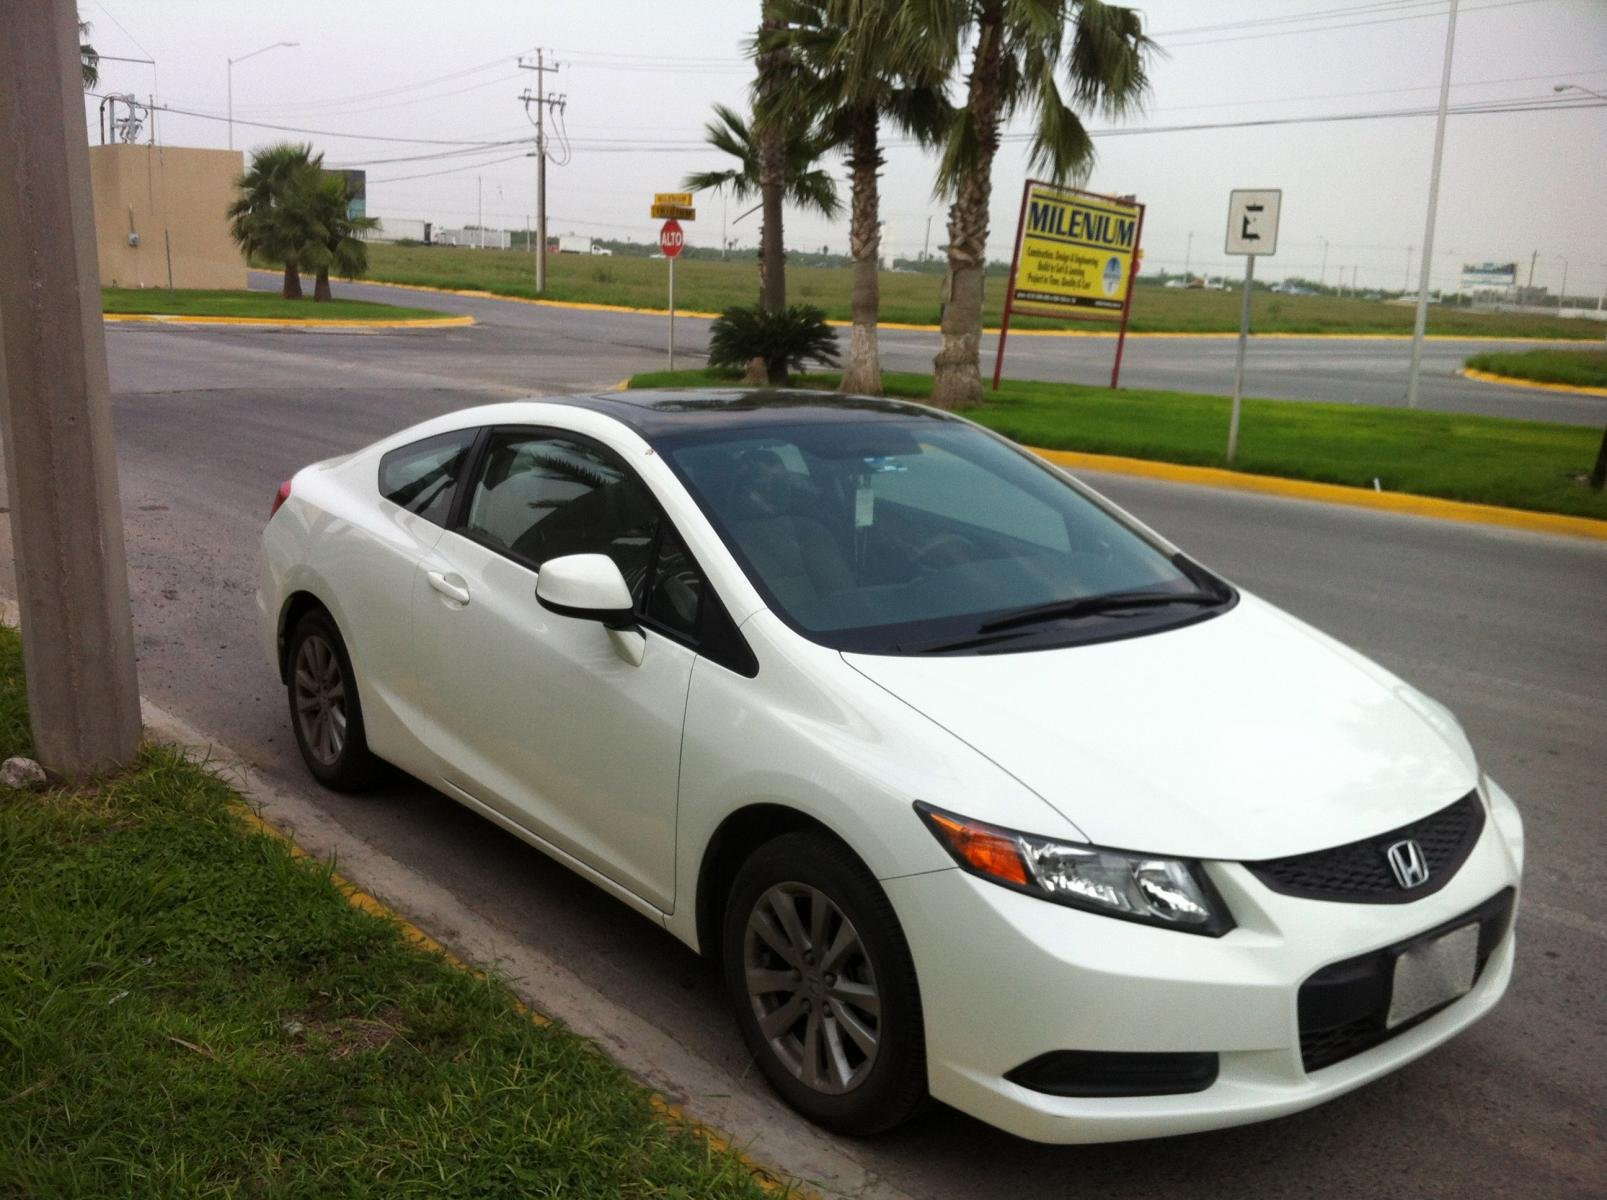 3m Gloss Black Roof Wrap Vinyl On Civic Ex Coupe White